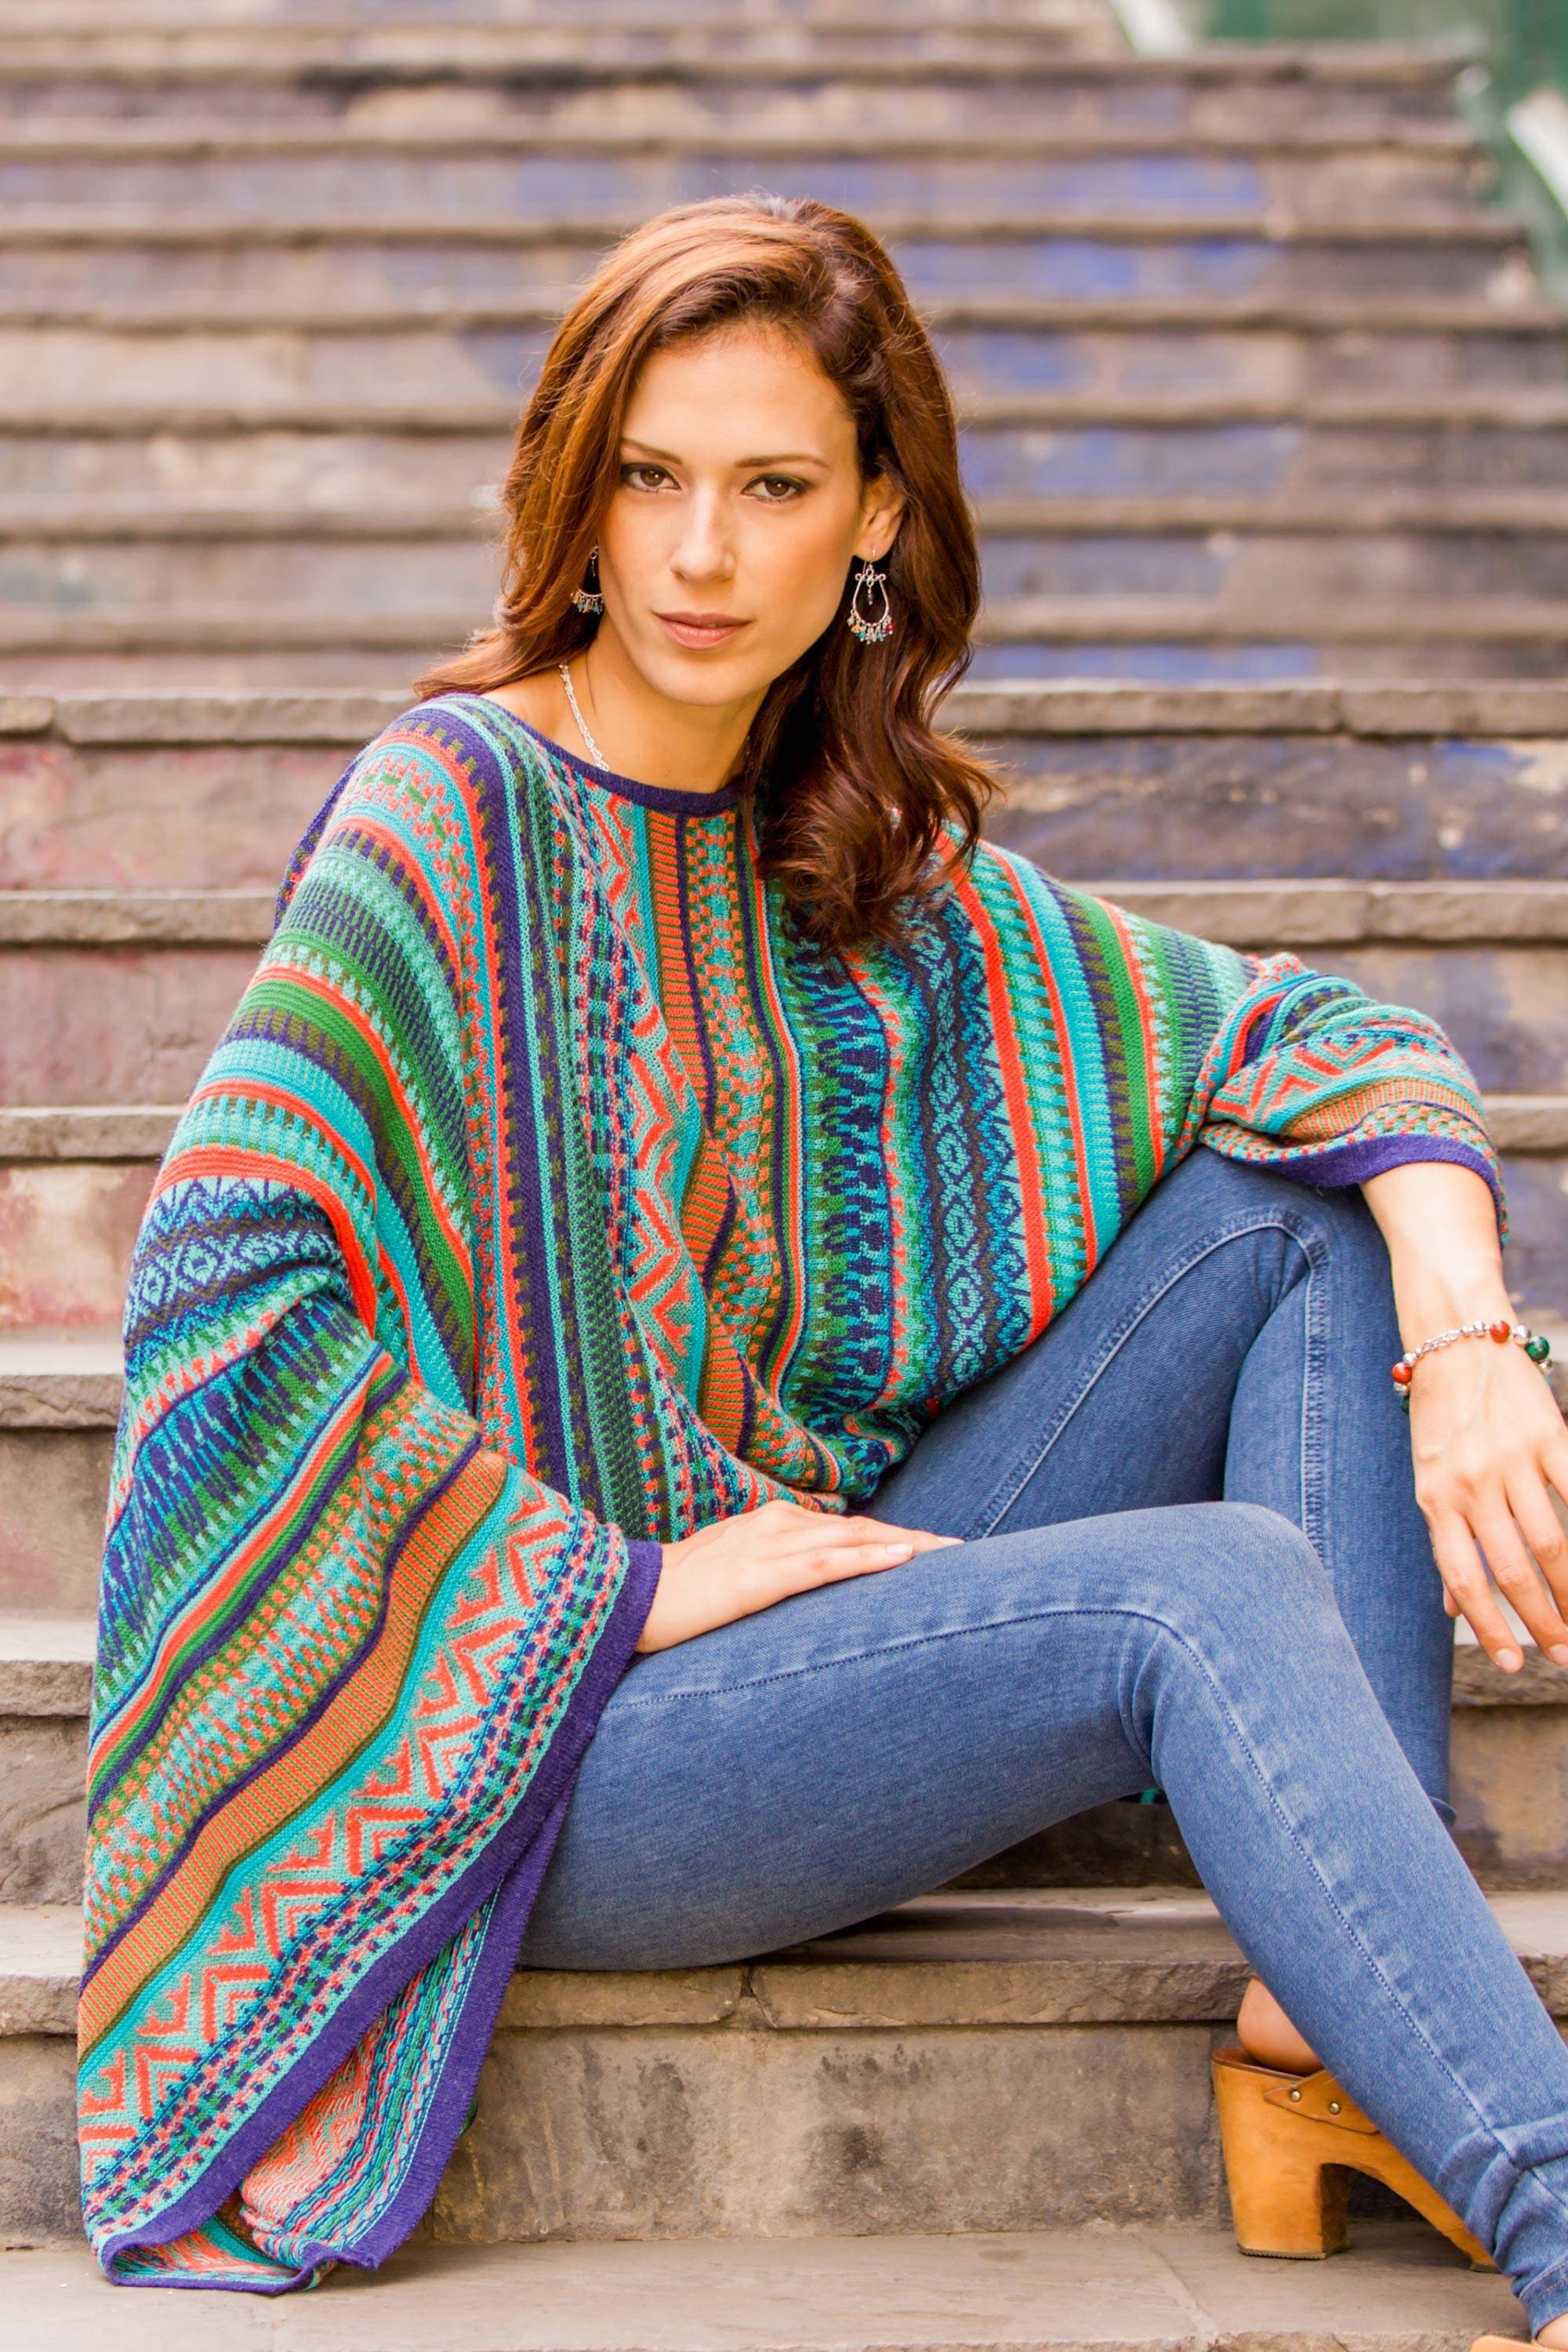 Lima Dance Bohemian Knit Sweater from Peru in Turquoise Stripes